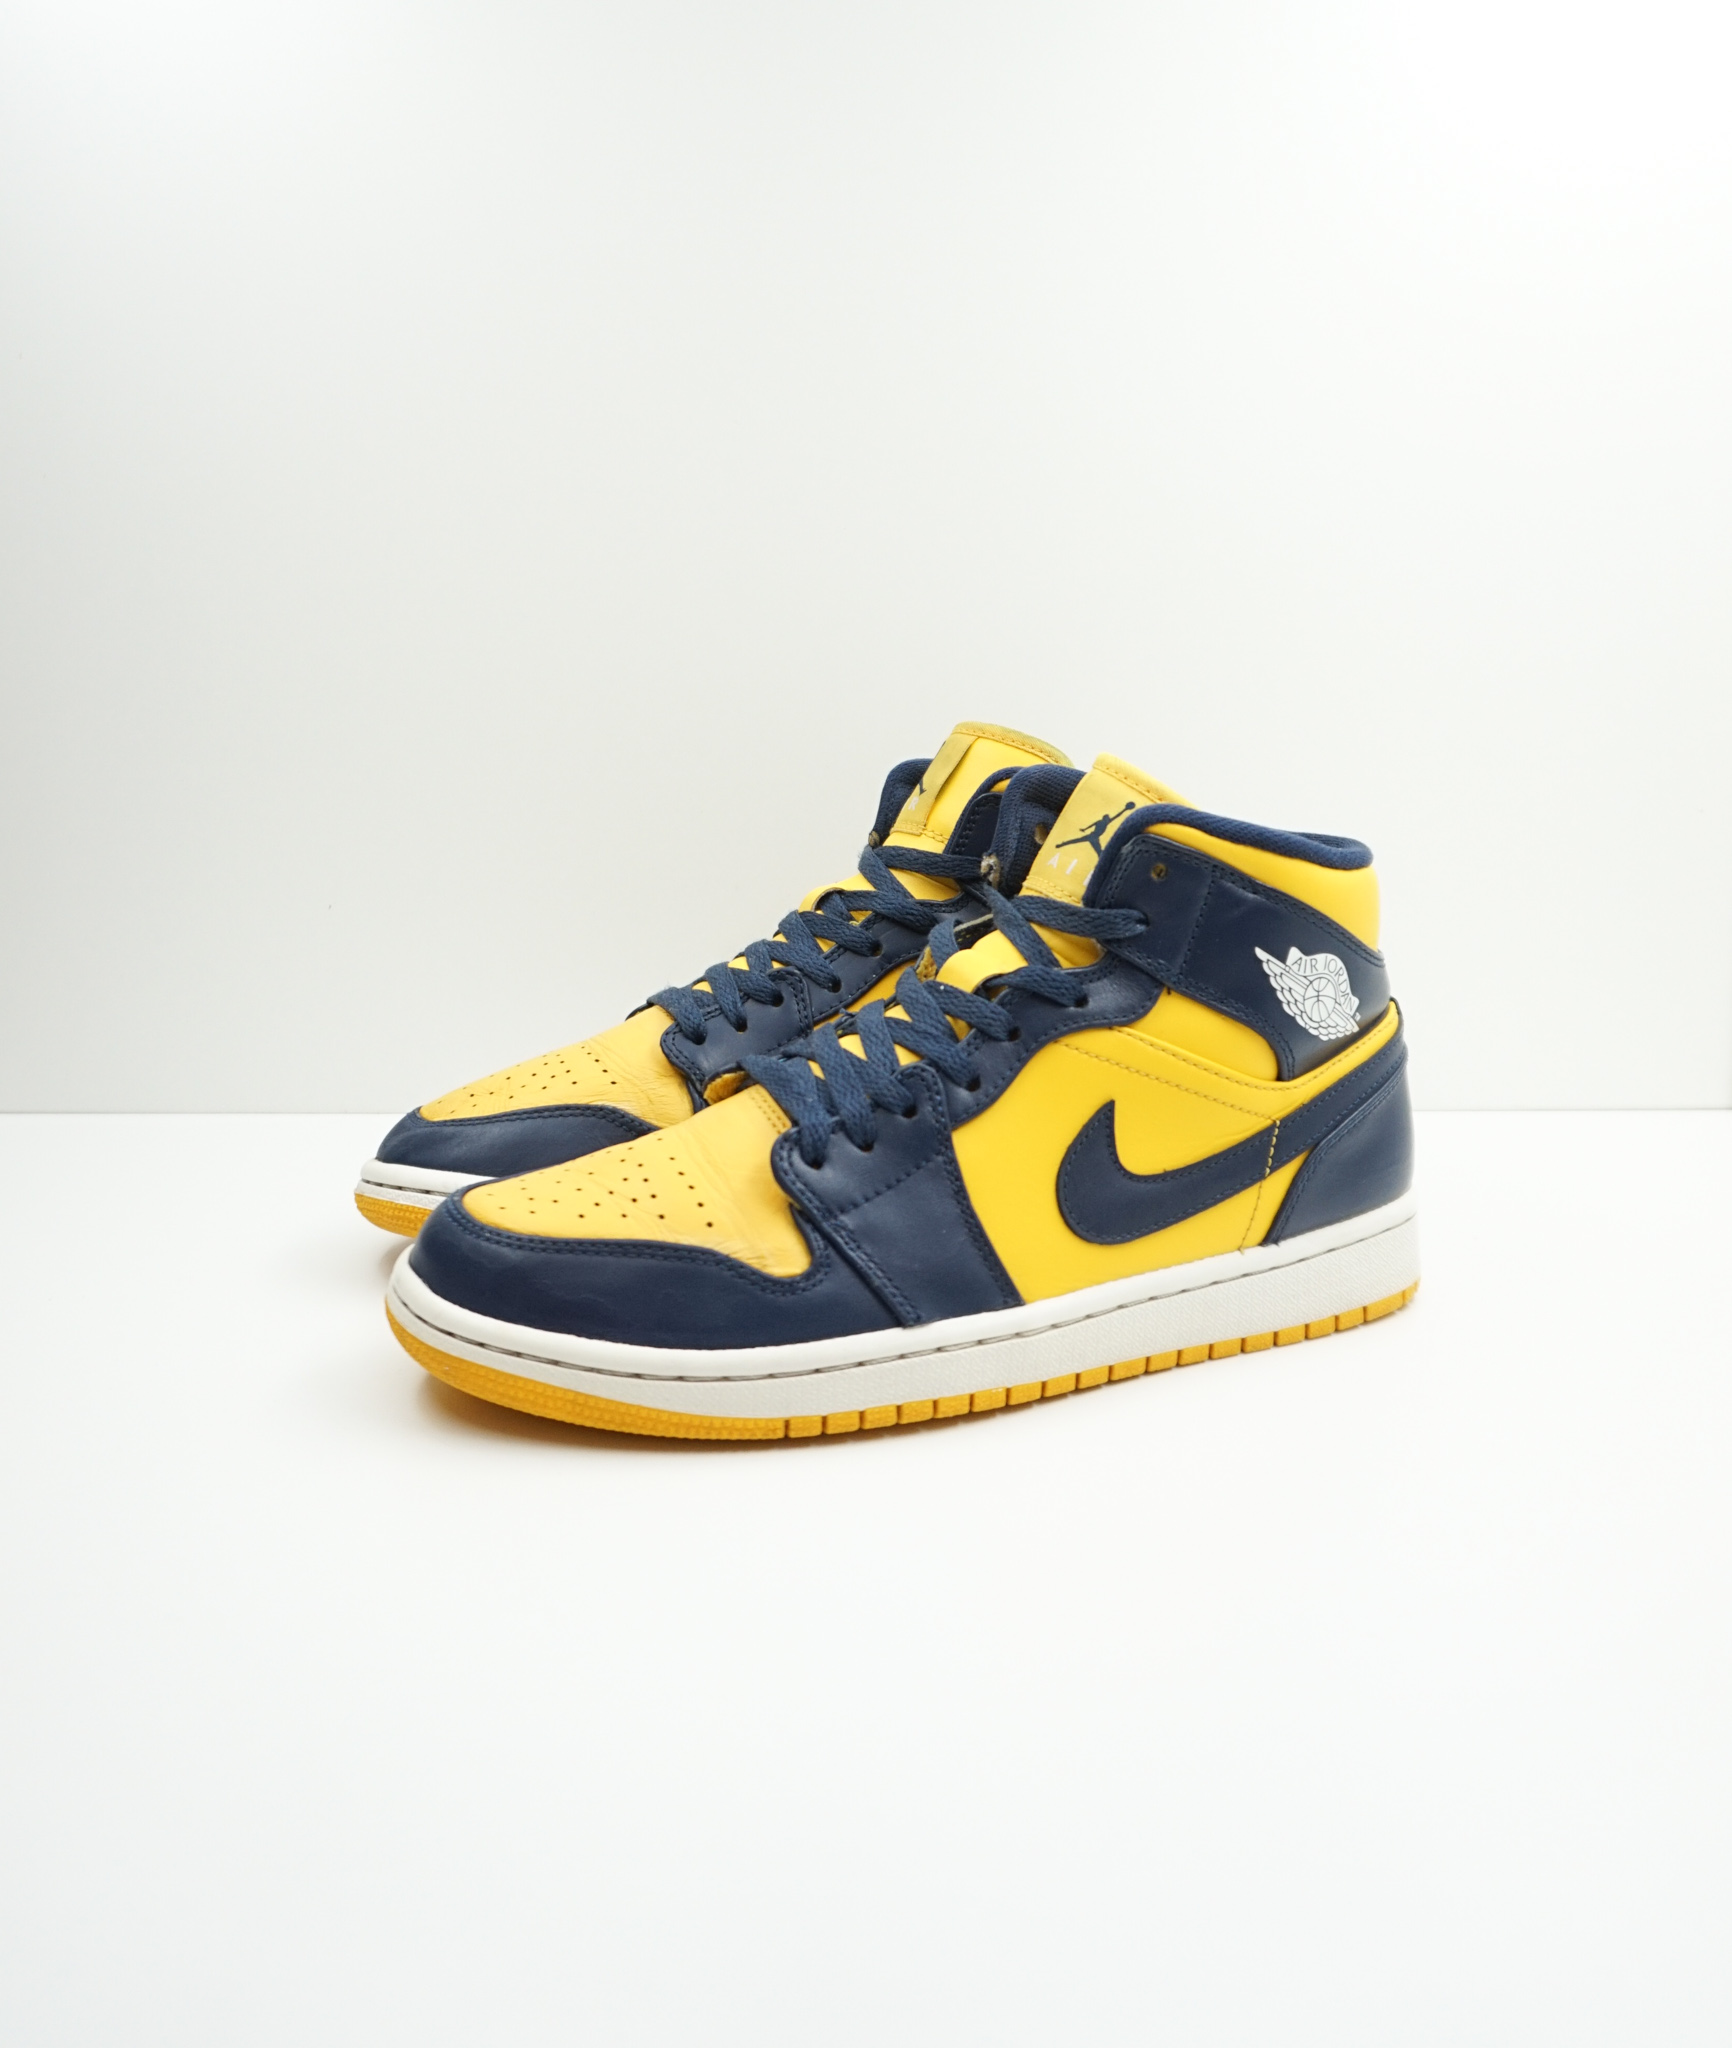 Jordan 1 Mid Michigan